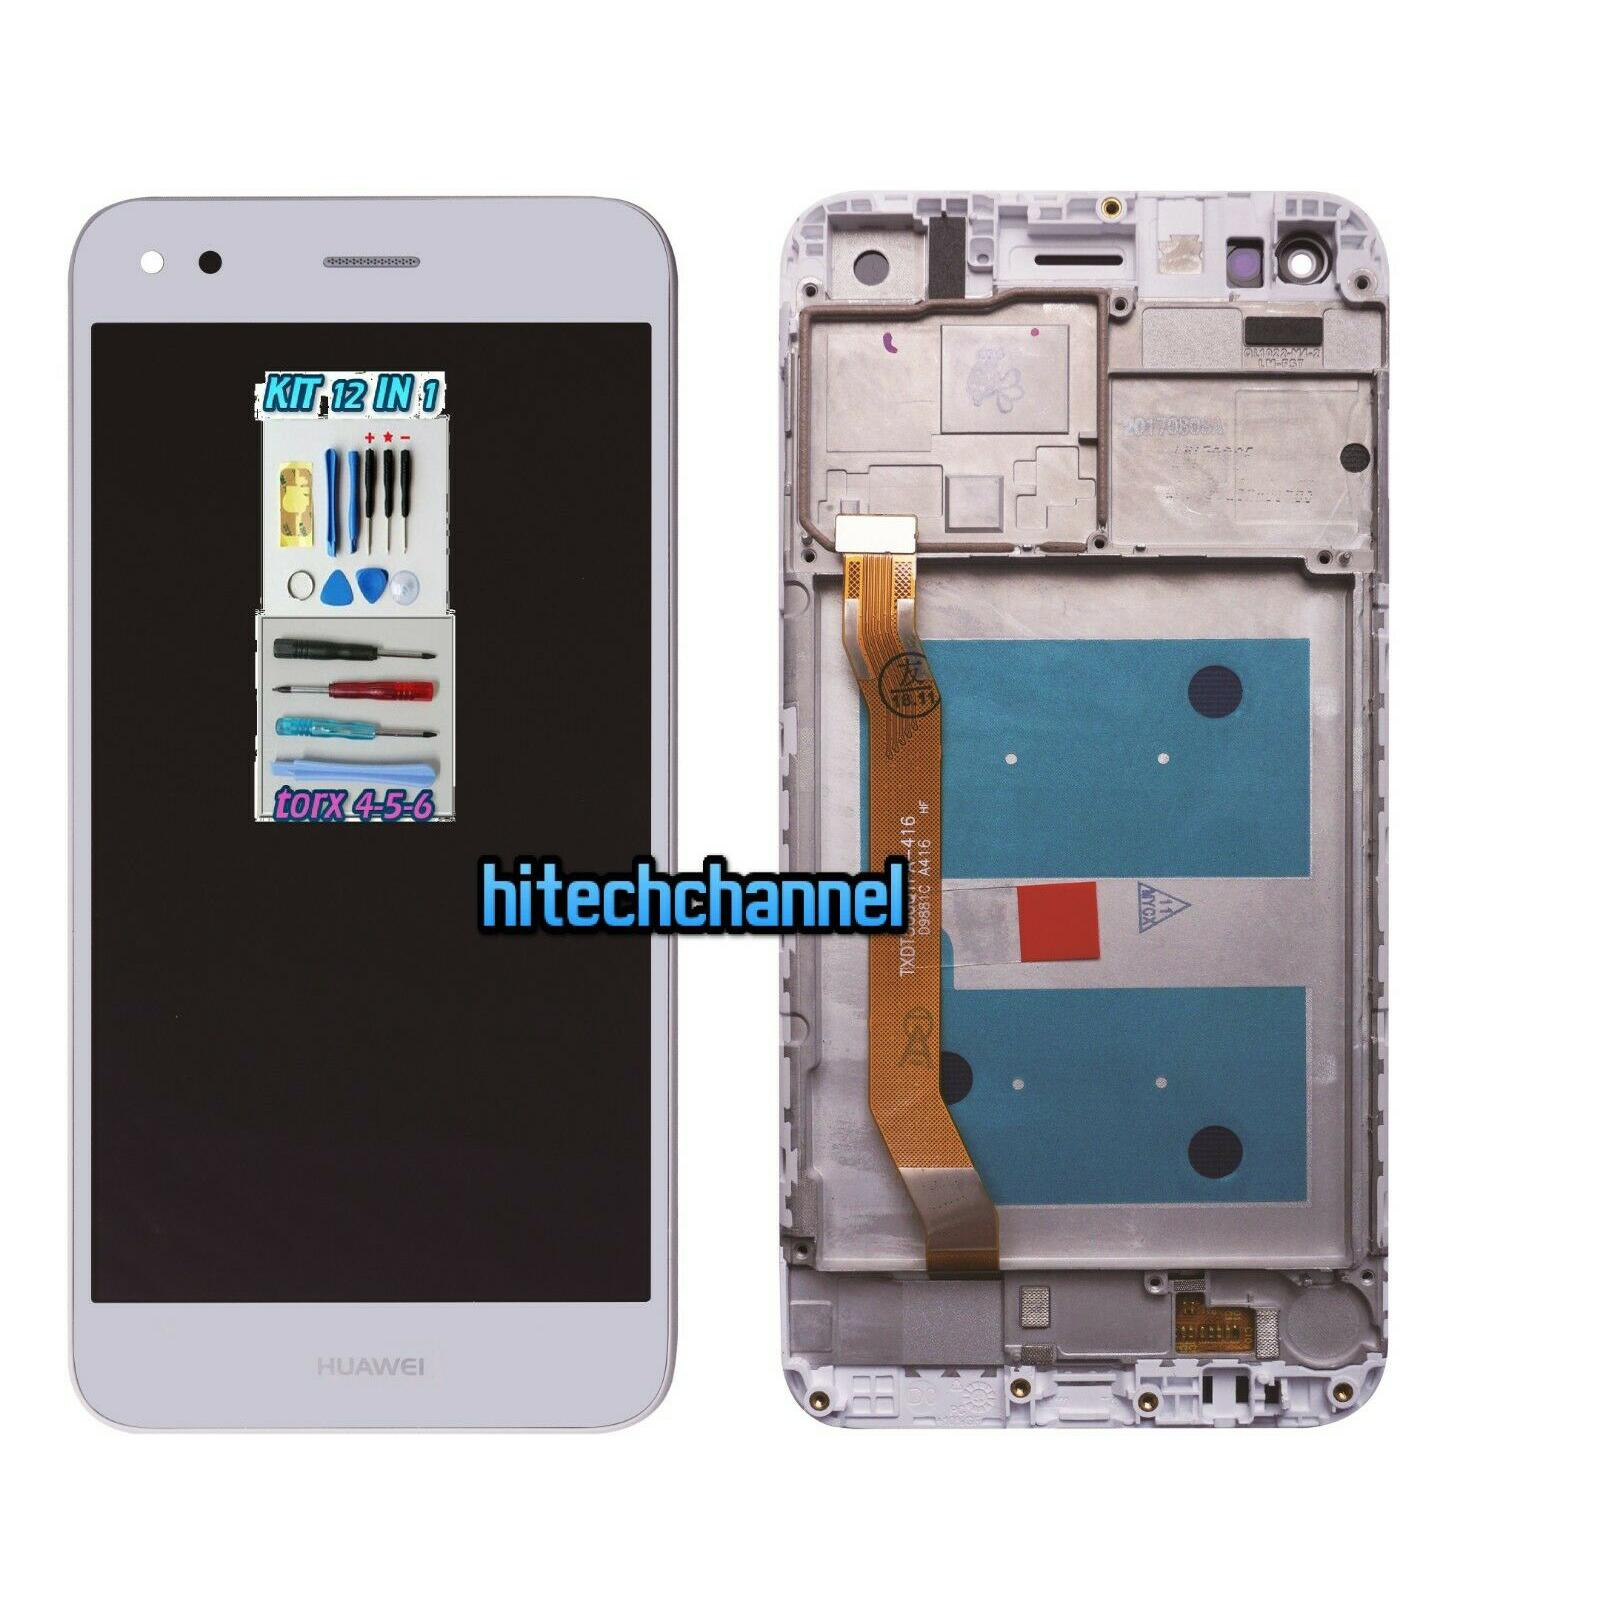 TOUCH SCREEN VETRO LCD DISPLAY FRAME BIANCO Huawei Y6 Pro 2017 SLA-L02 L22 TL00 Enjoy 7 +colla B7000 kit 9 in 1 e biadesivo